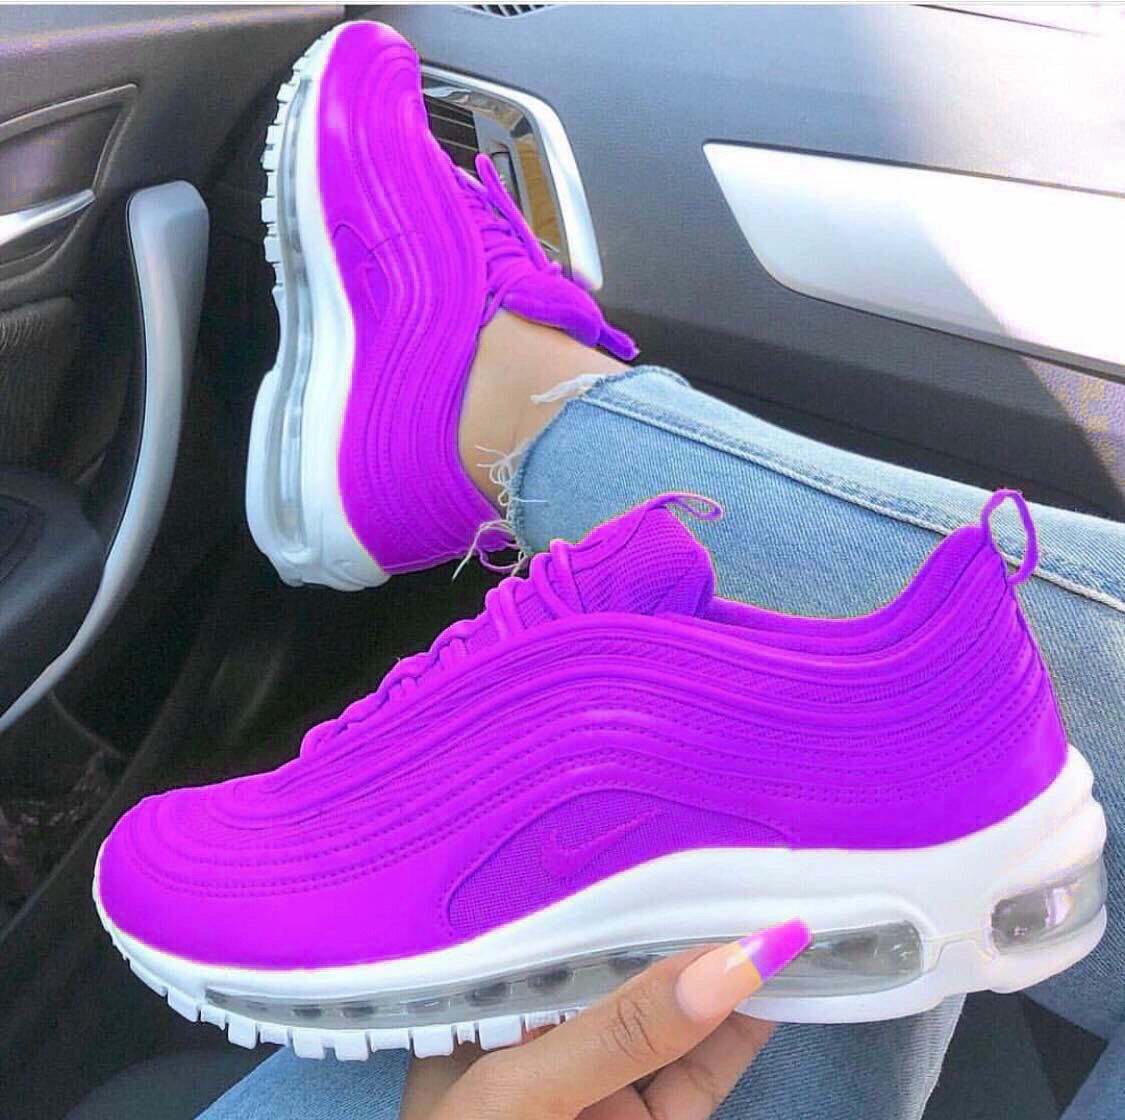 Pin by Andrea so funny A4l on Nike air max 97 (With images